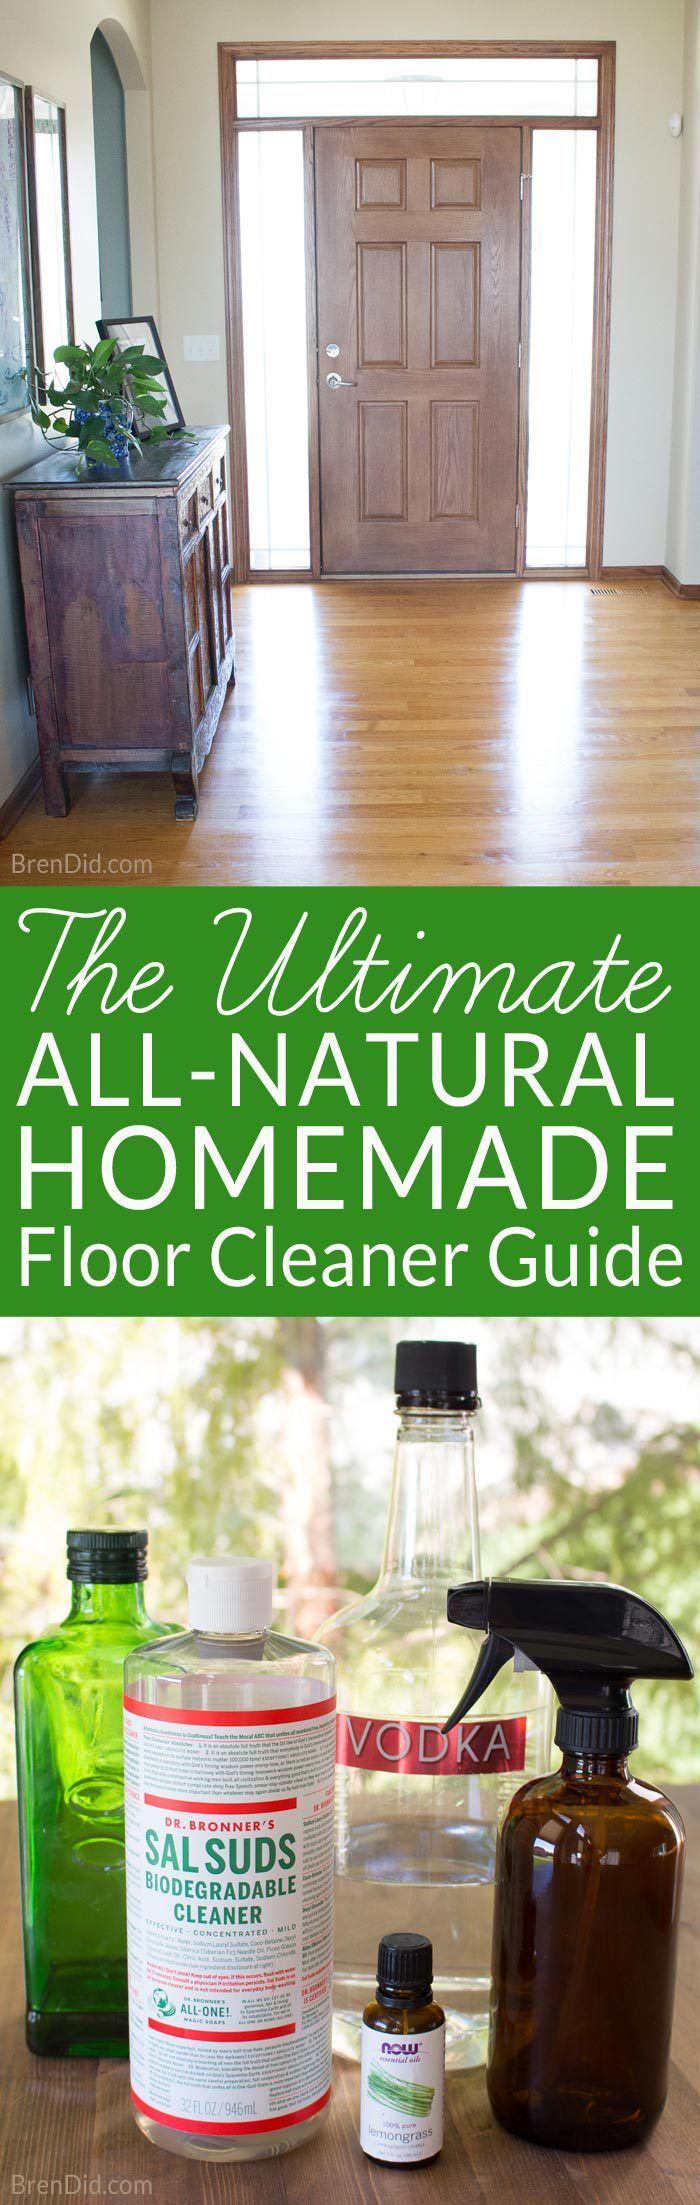 The ultimate all natural homemade floor cleaner guide natural this guide to natural floor cleaning homemade floor cleaner recipe will keep all your hard dailygadgetfo Choice Image